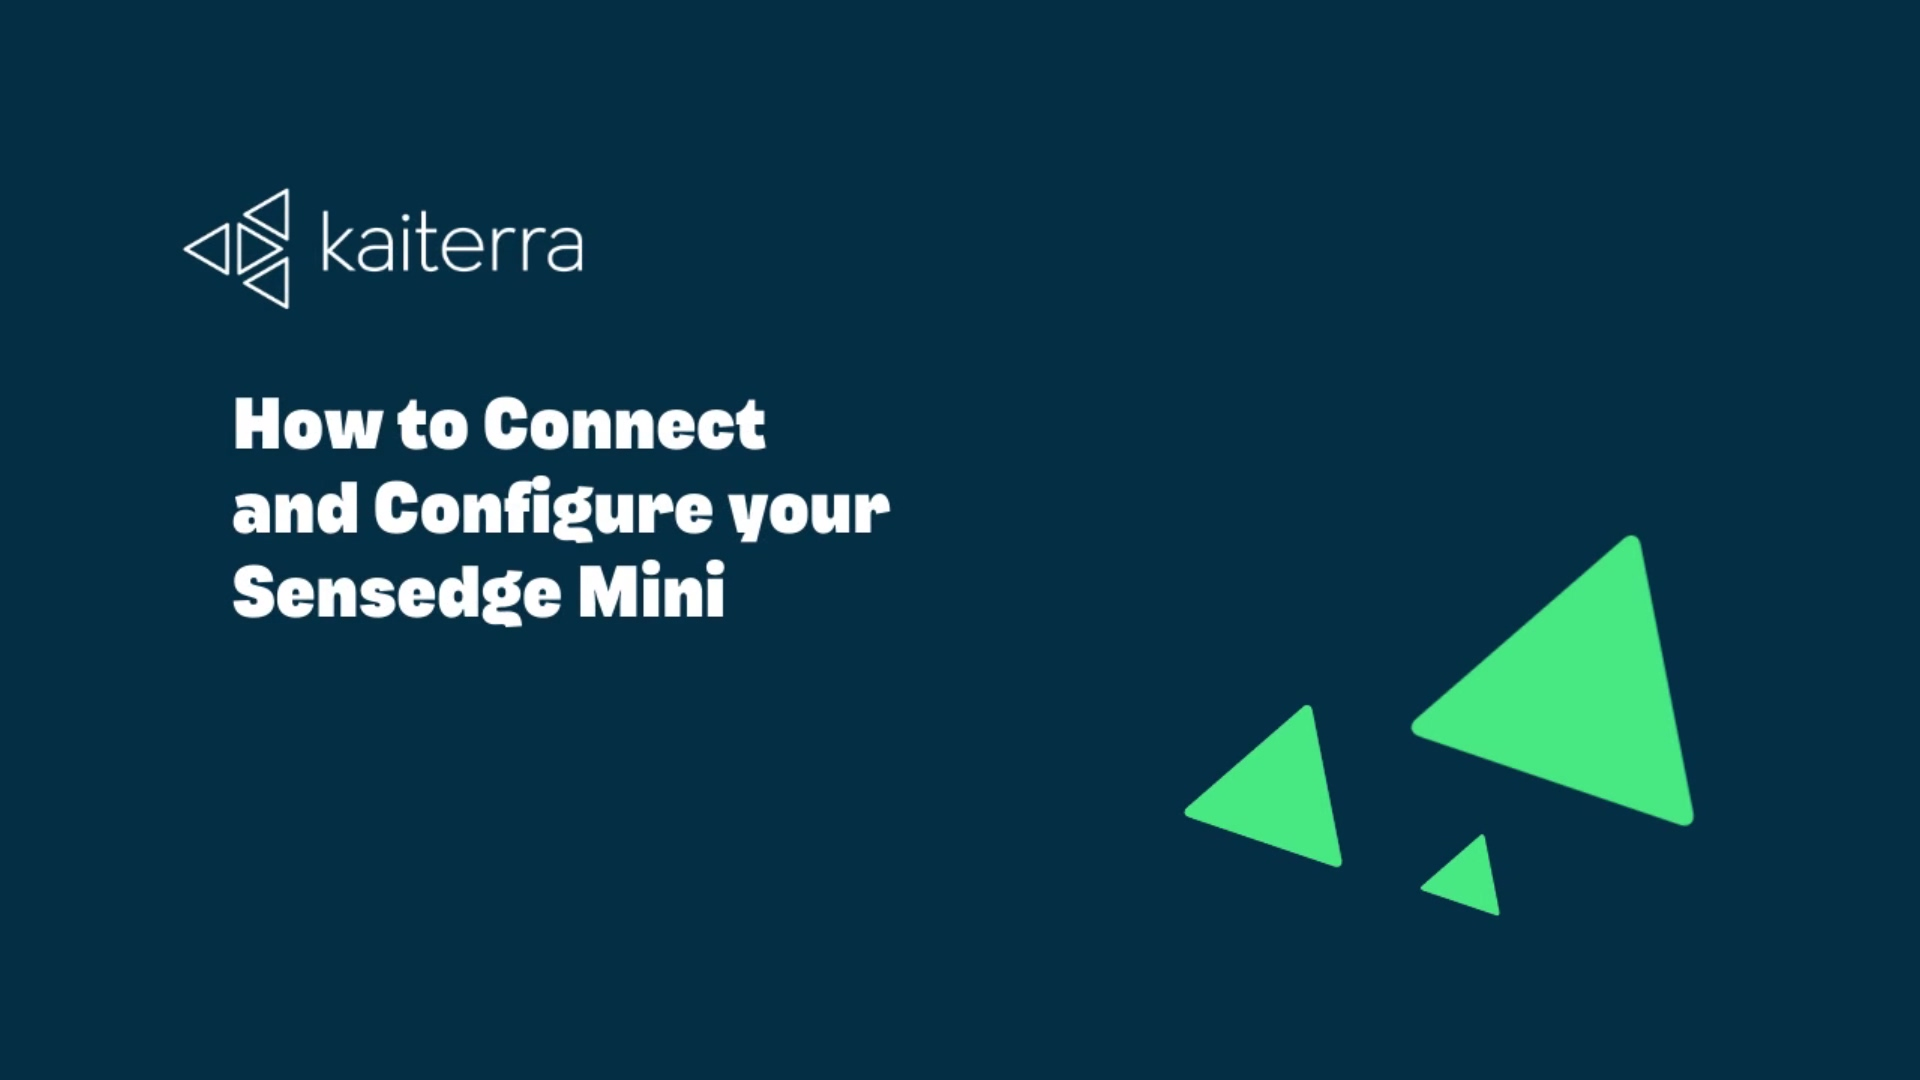 How to Connect and Configure your Sensedge Mini